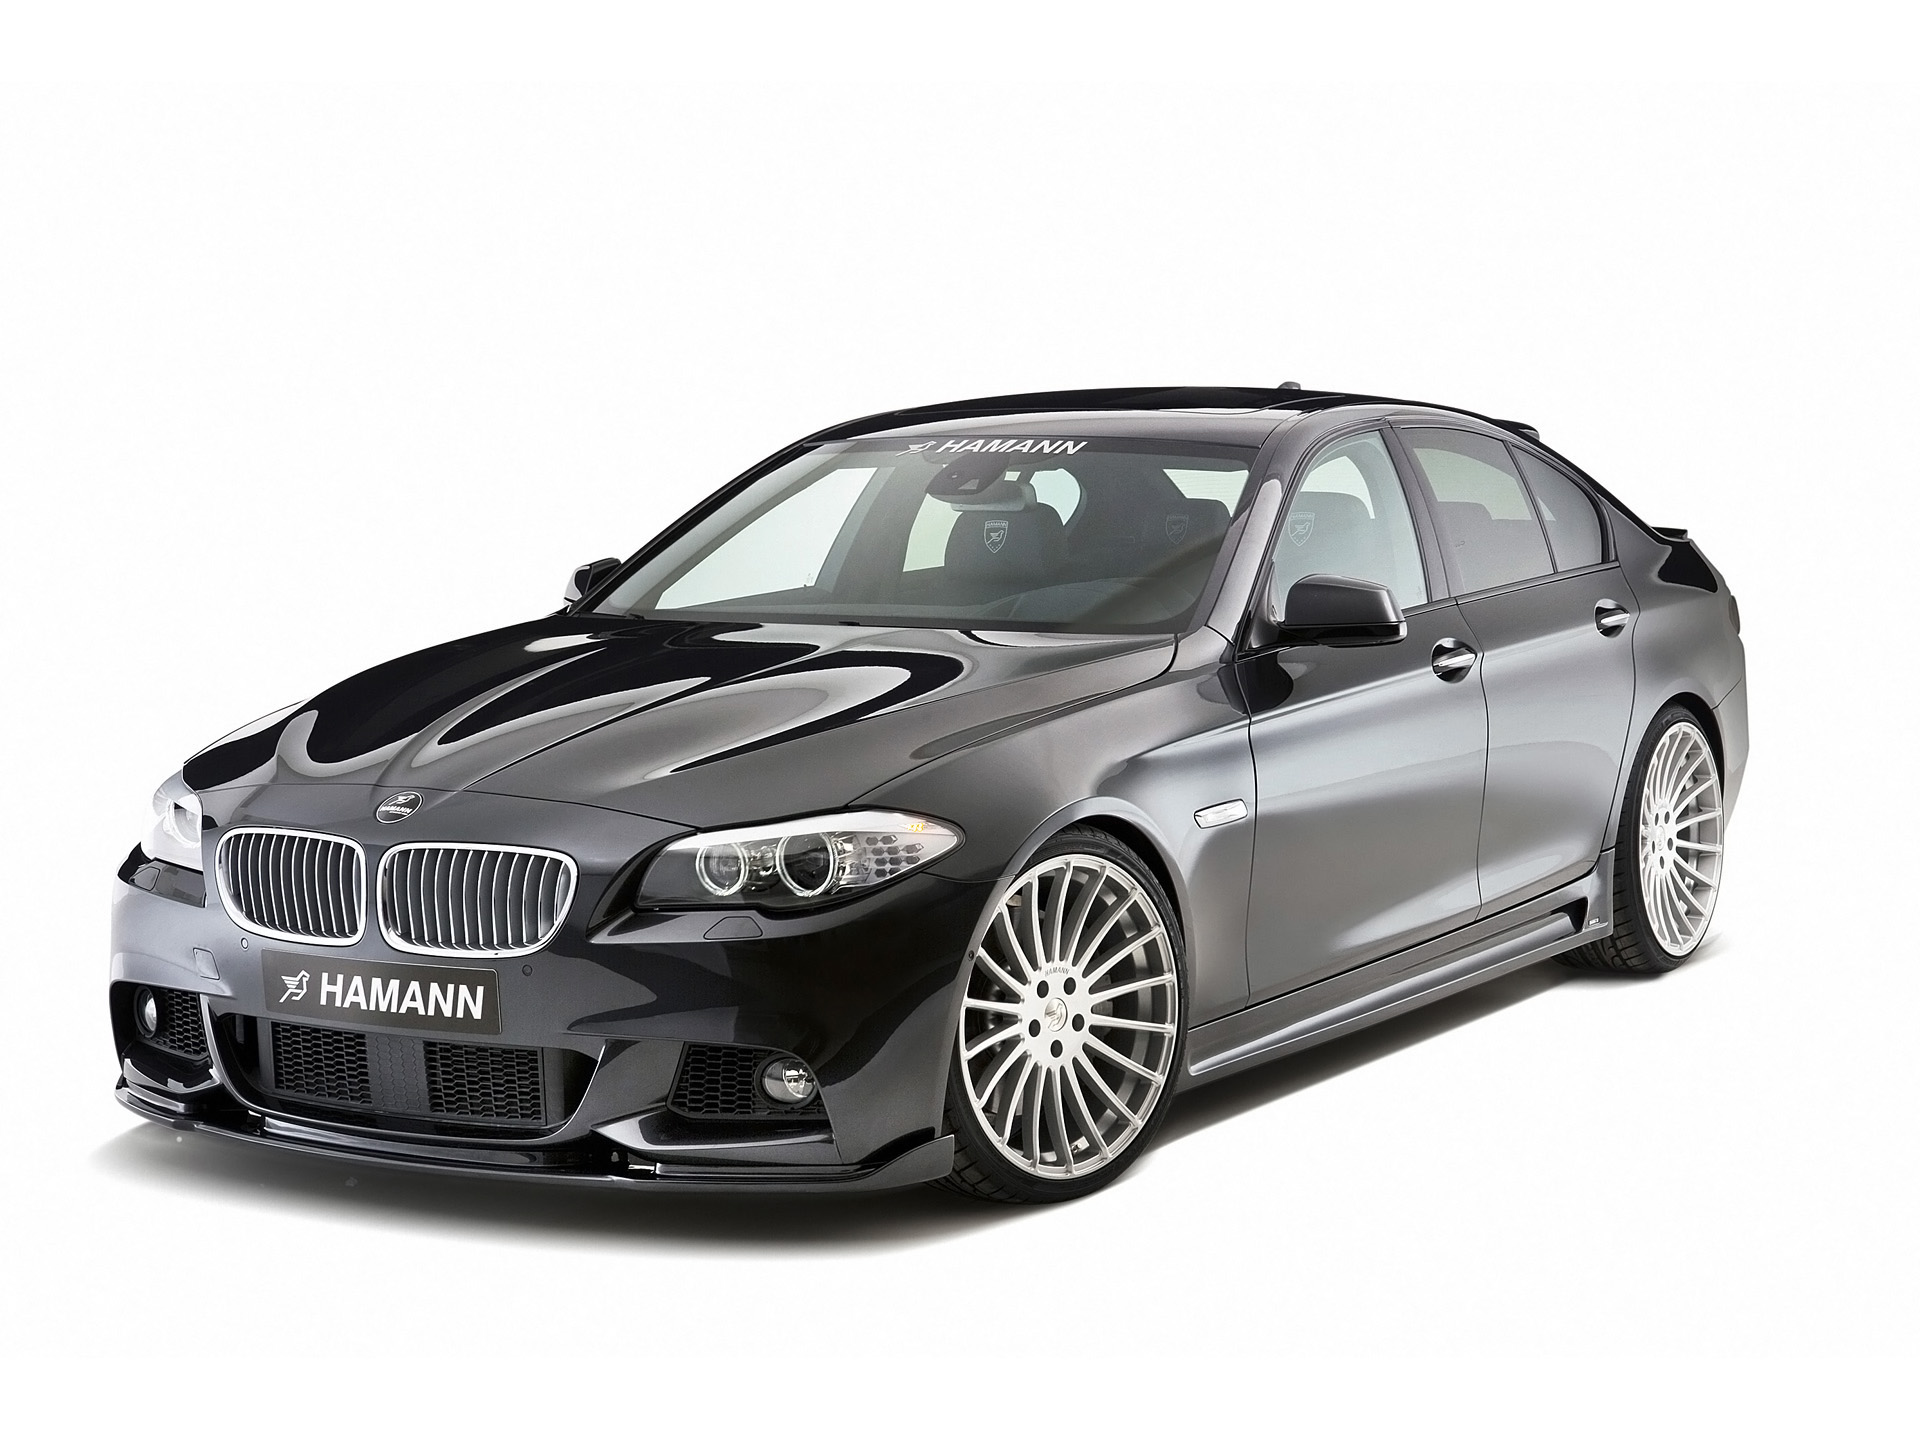 Hamann BMW 5-Series F10 M Technik photo #1